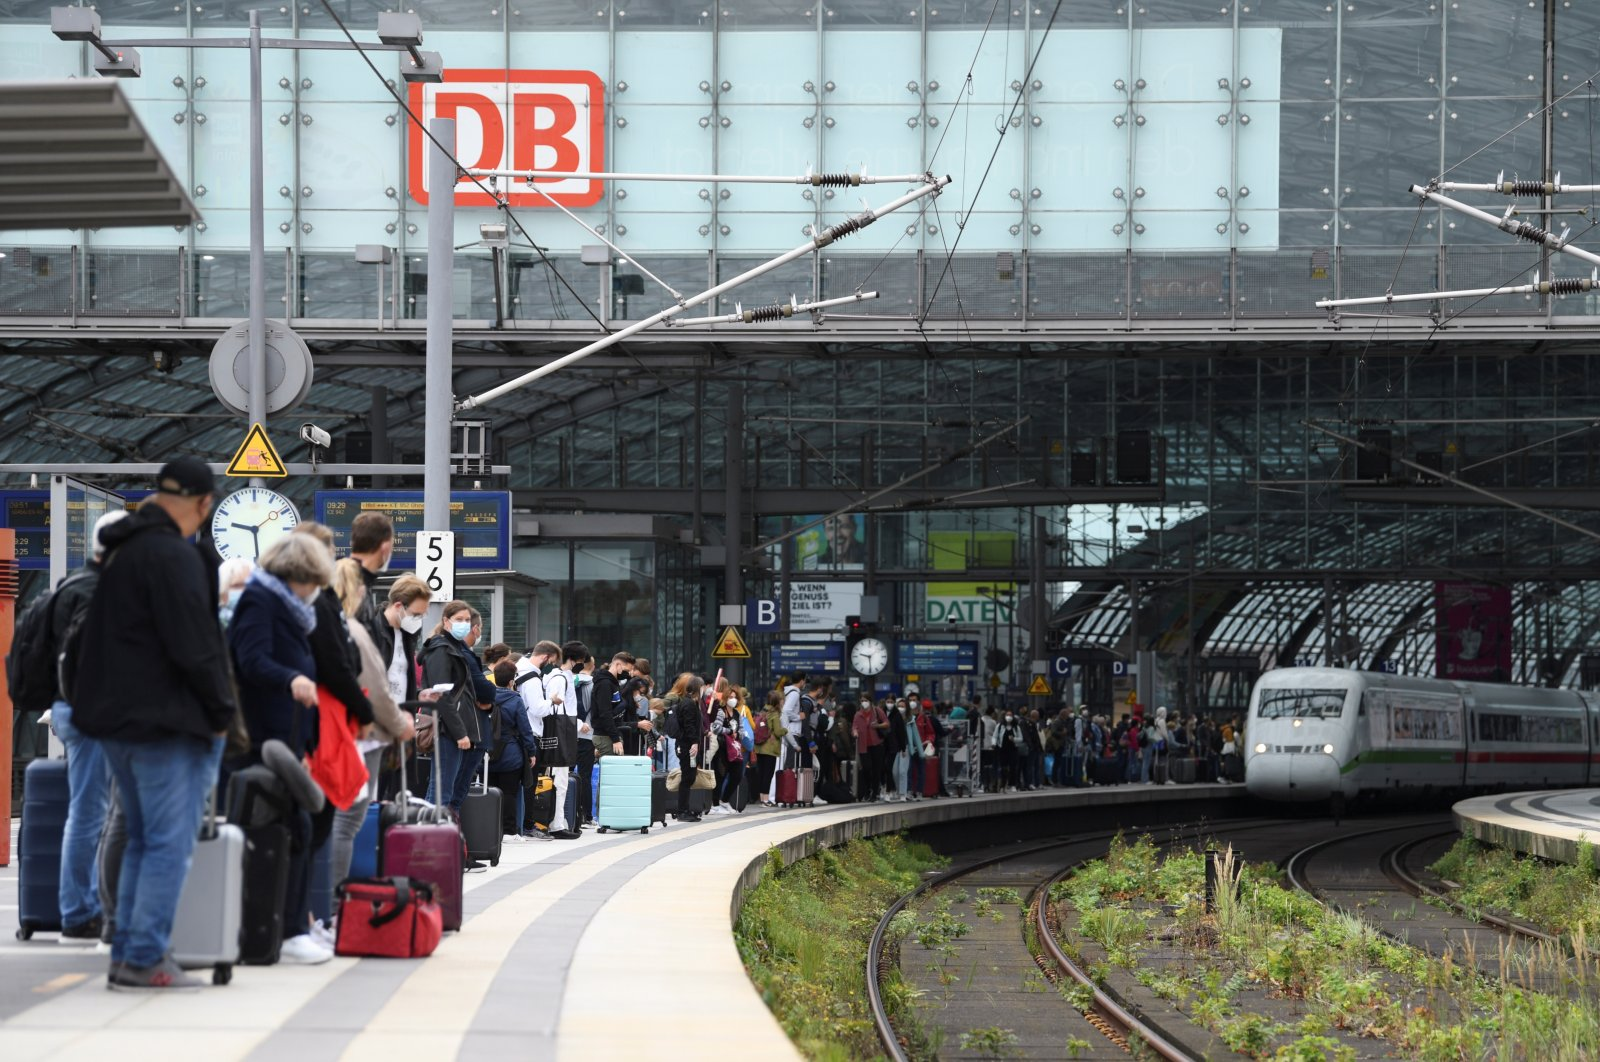 People wait for an arriving train on a platform at Berlin's main railway station during a nationwide rail workers' strike, in Berlin, Germany, Aug. 23, 2021. (Reuters Photo)